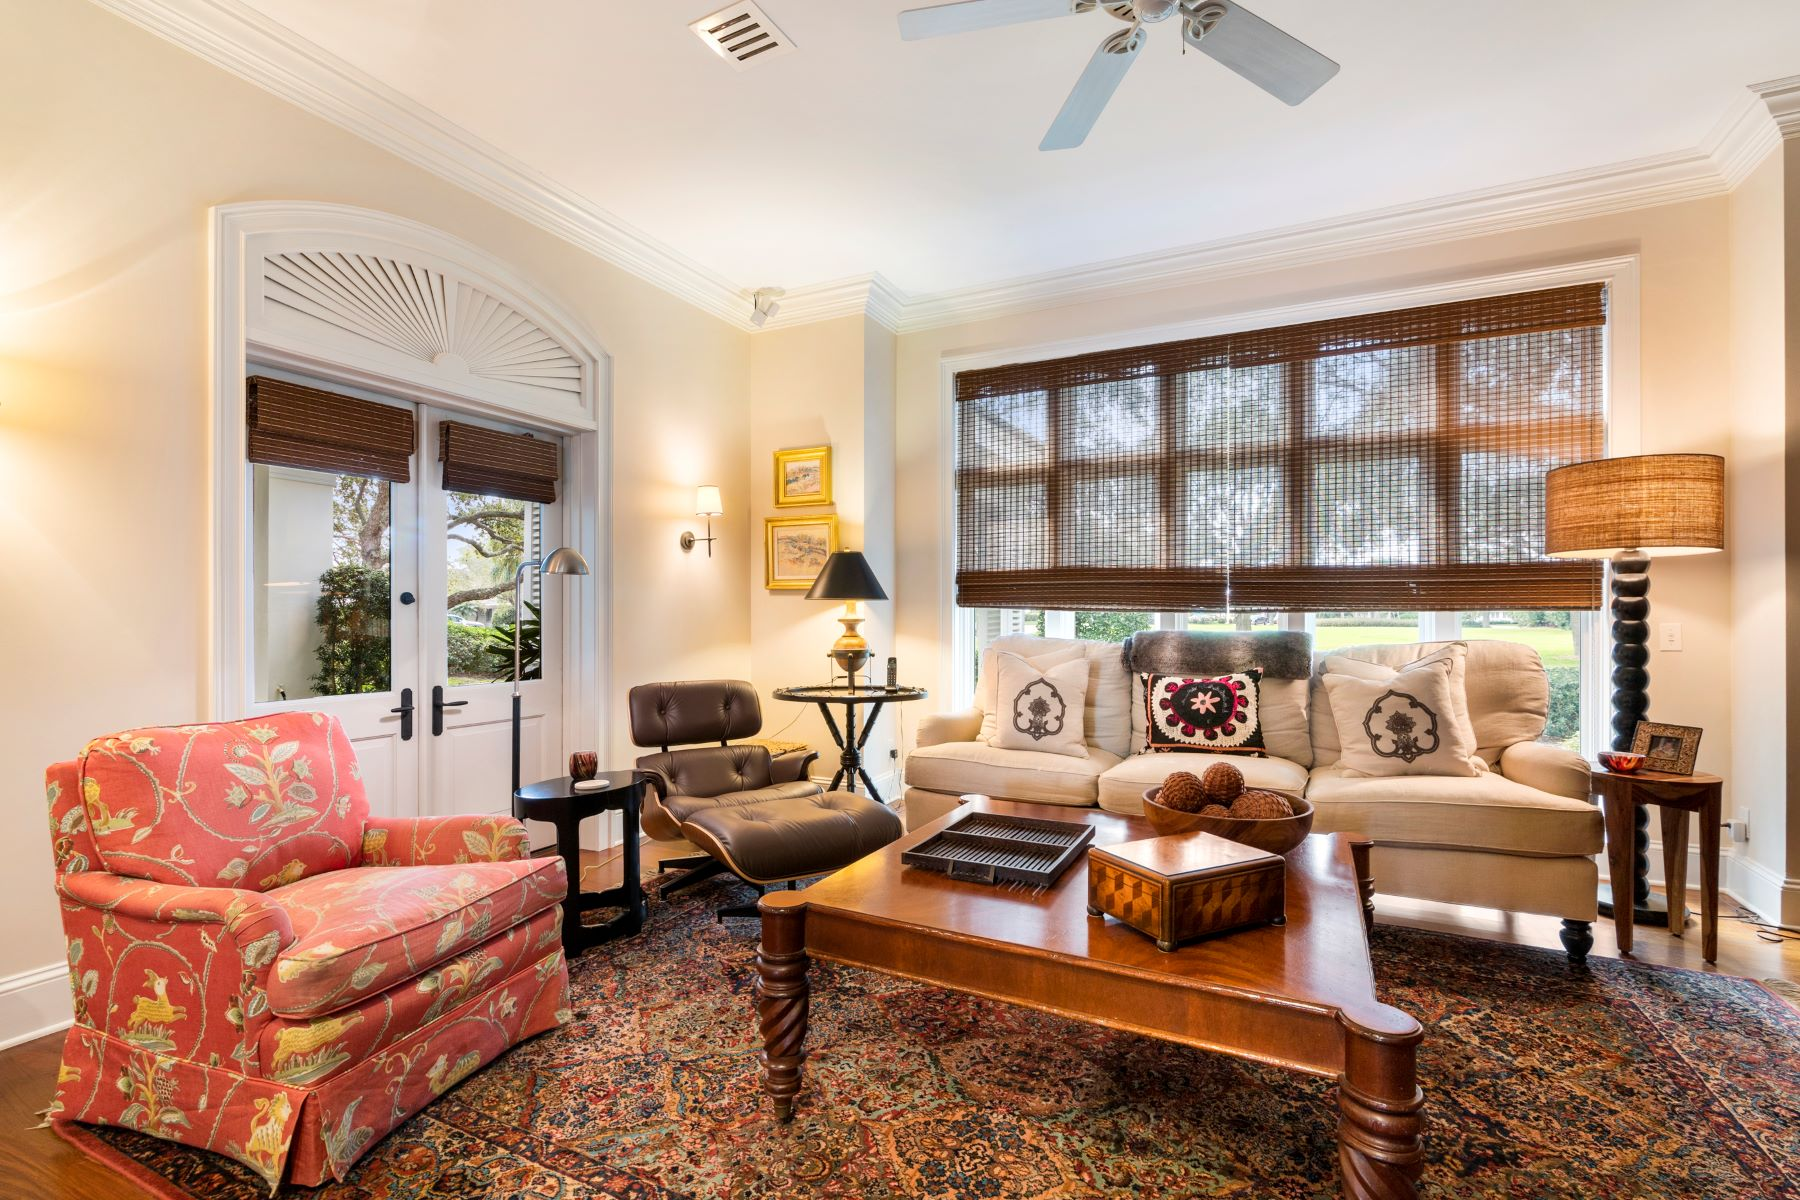 Additional photo for property listing at 170 Anchor Drive Vero Beach, Florida 32963 United States